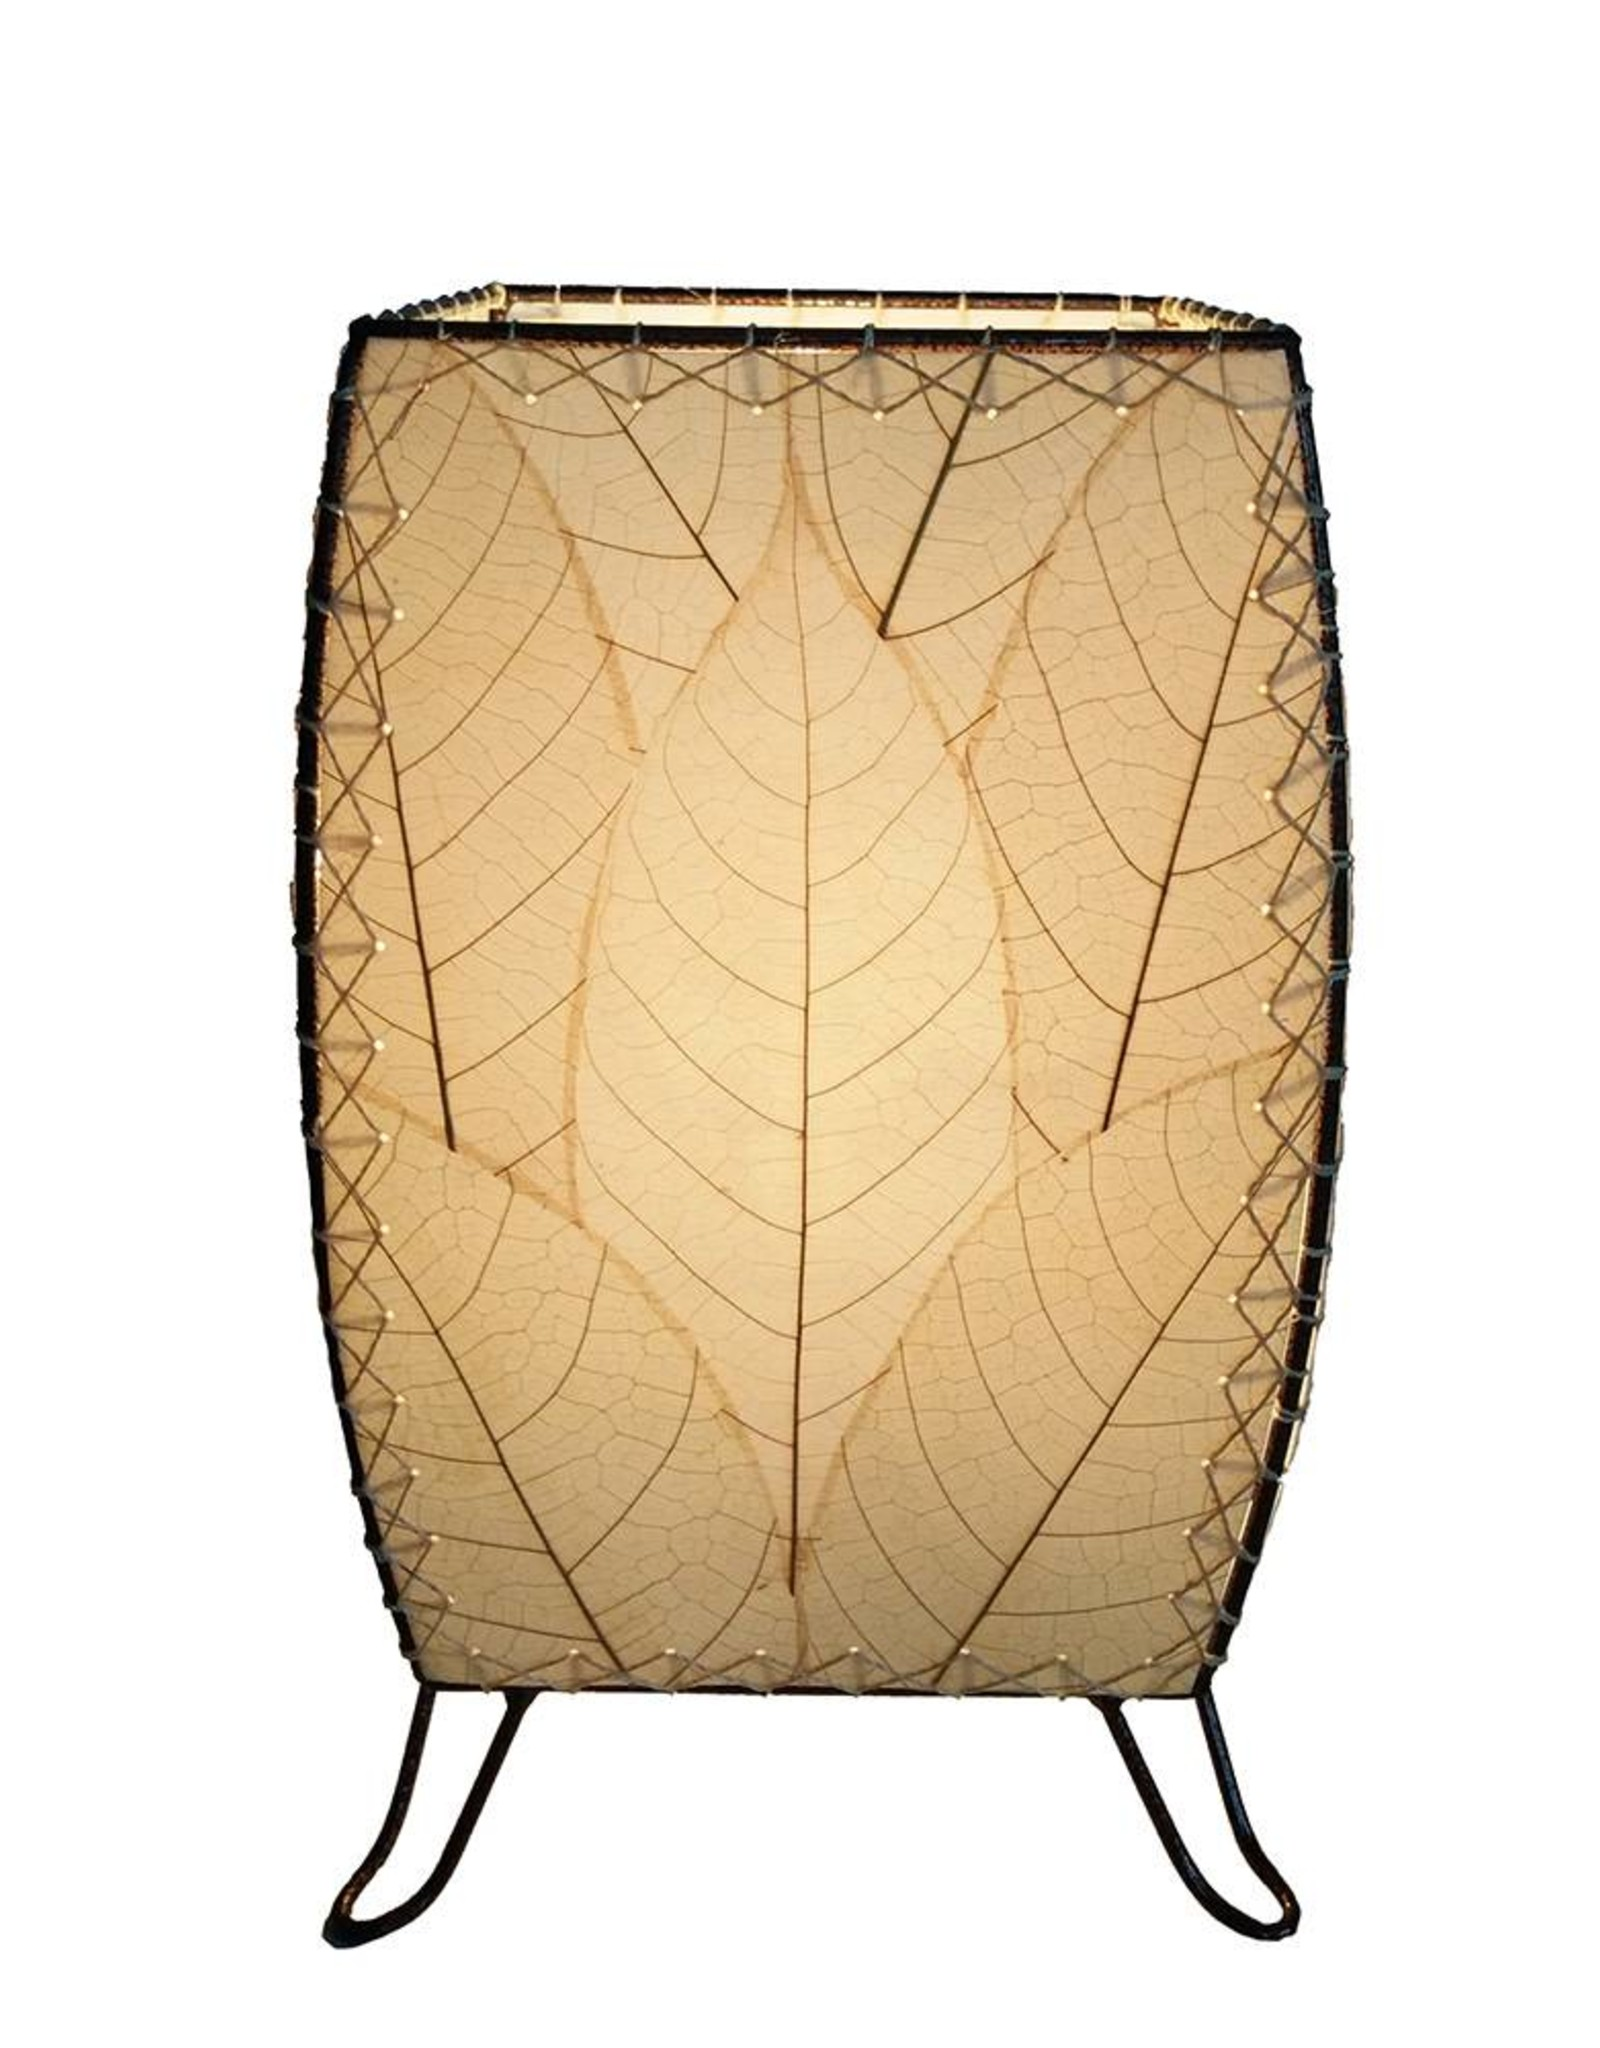 Eangee Outdoor Cube Table Lamp